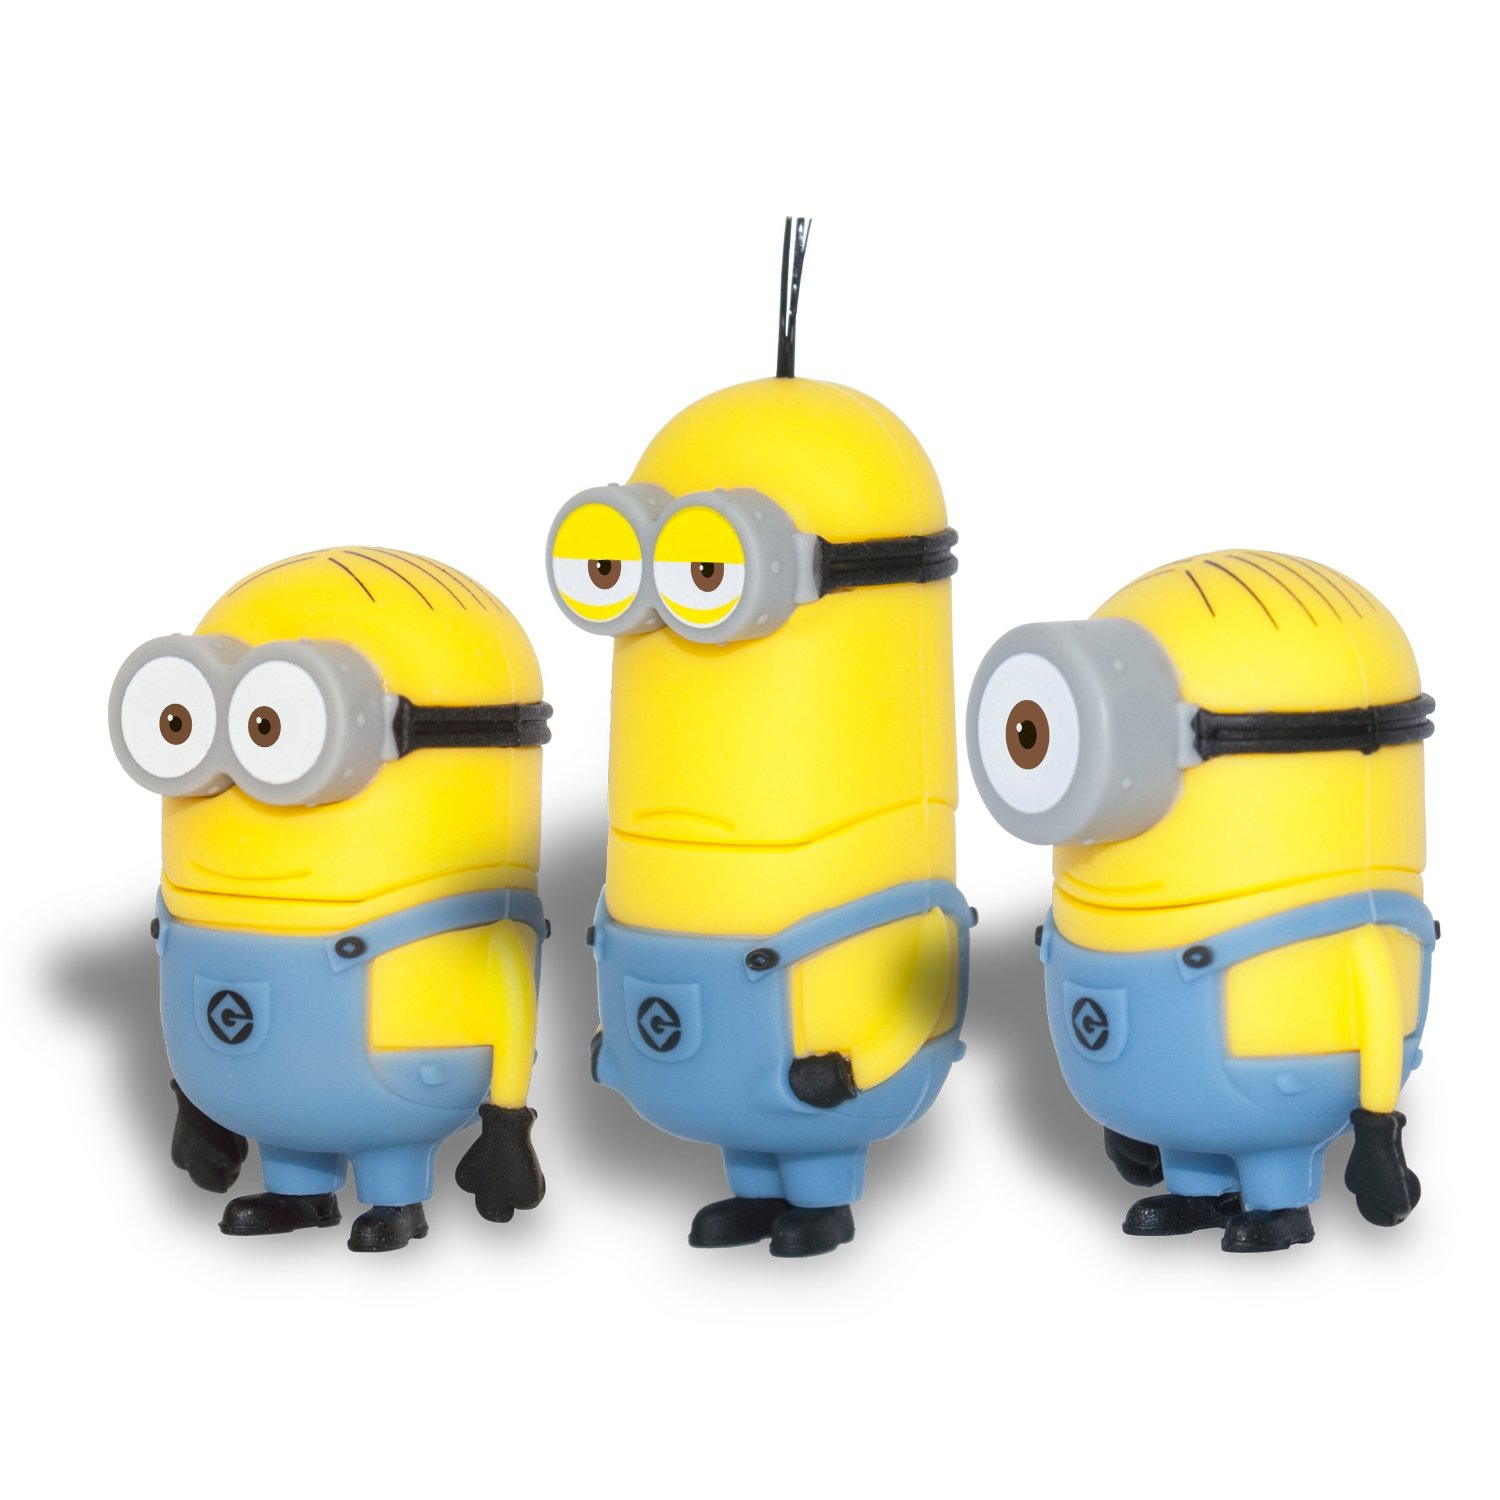 Despicable Me 2 Minions 3 Pack 8GB USB Flash Drive, Dave, Kevin, Stuart